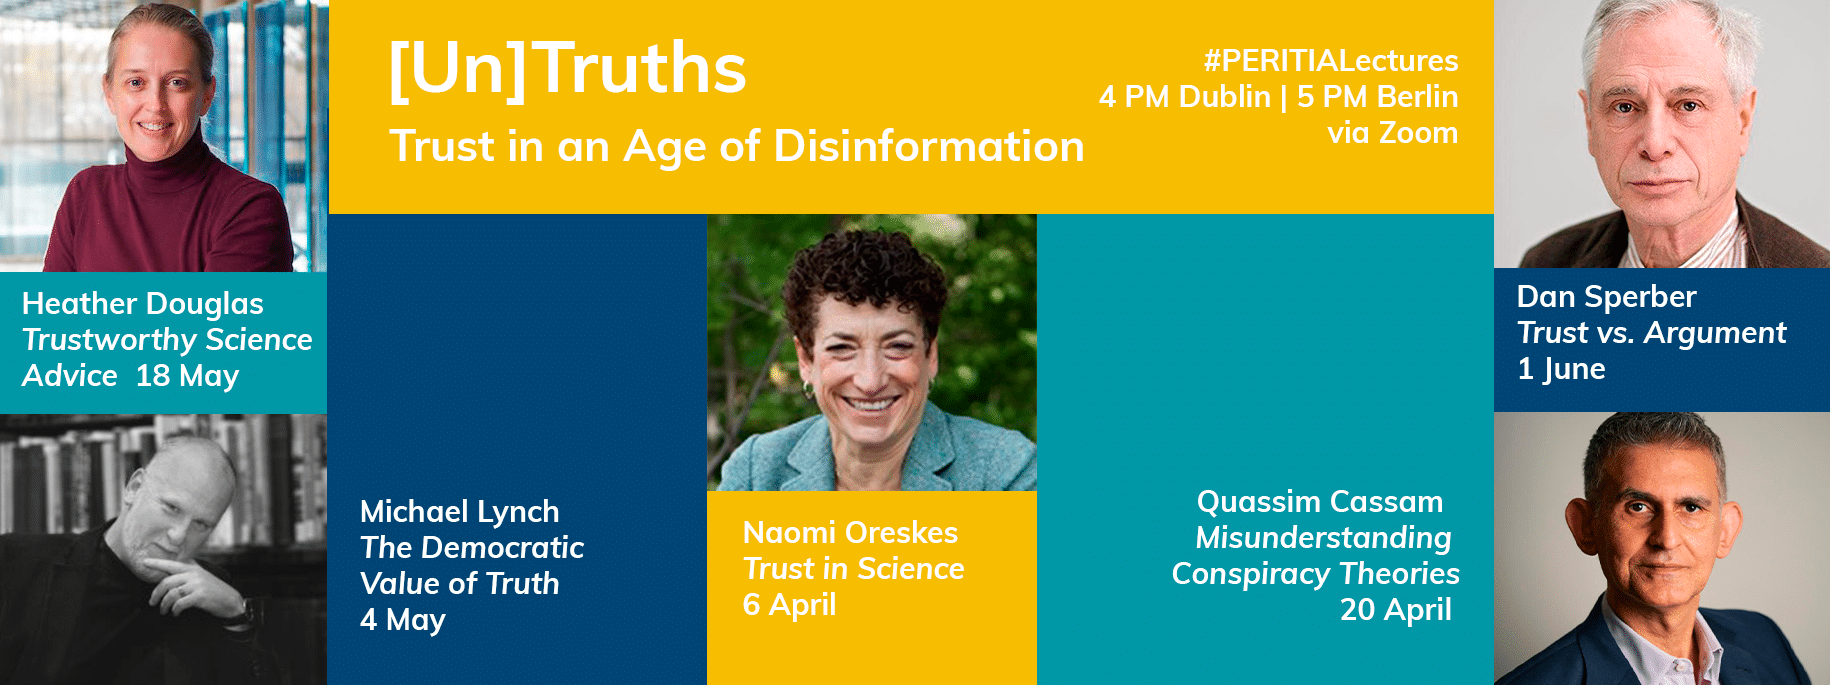 PERITIA Public Lectures on Trust in an Age of Disinformation